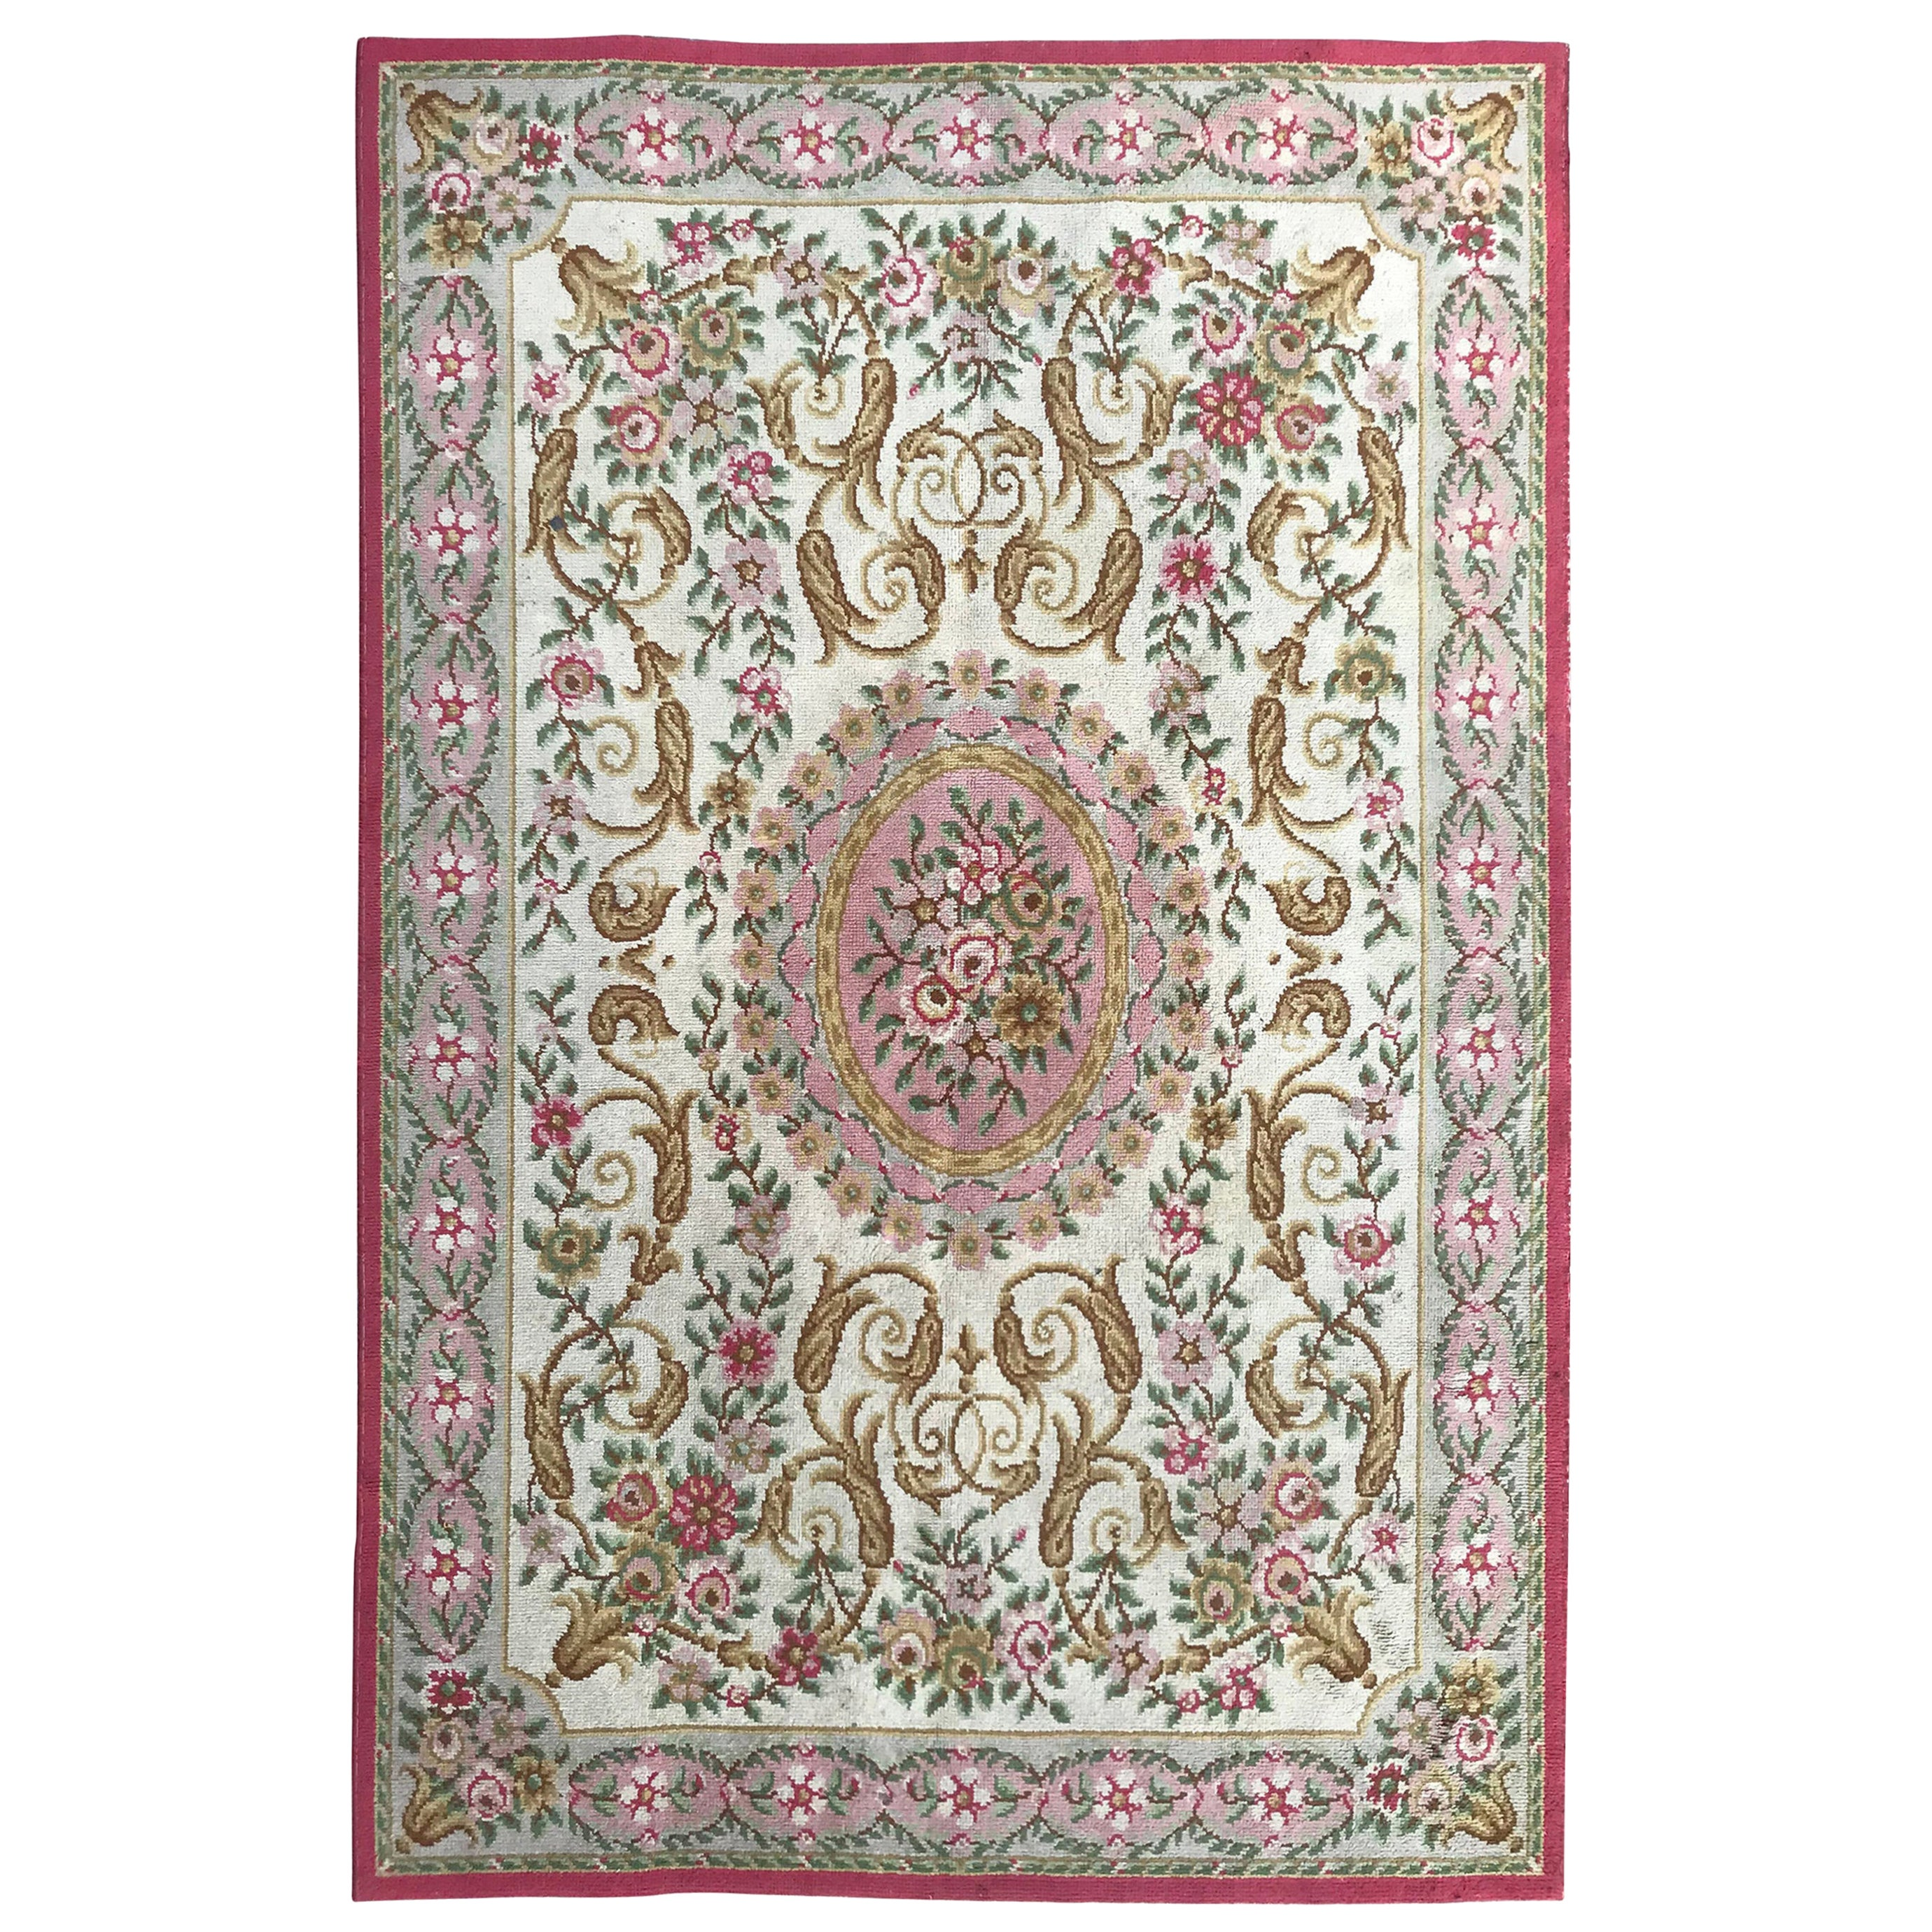 Nice Antique Knotted Aubusson Rug